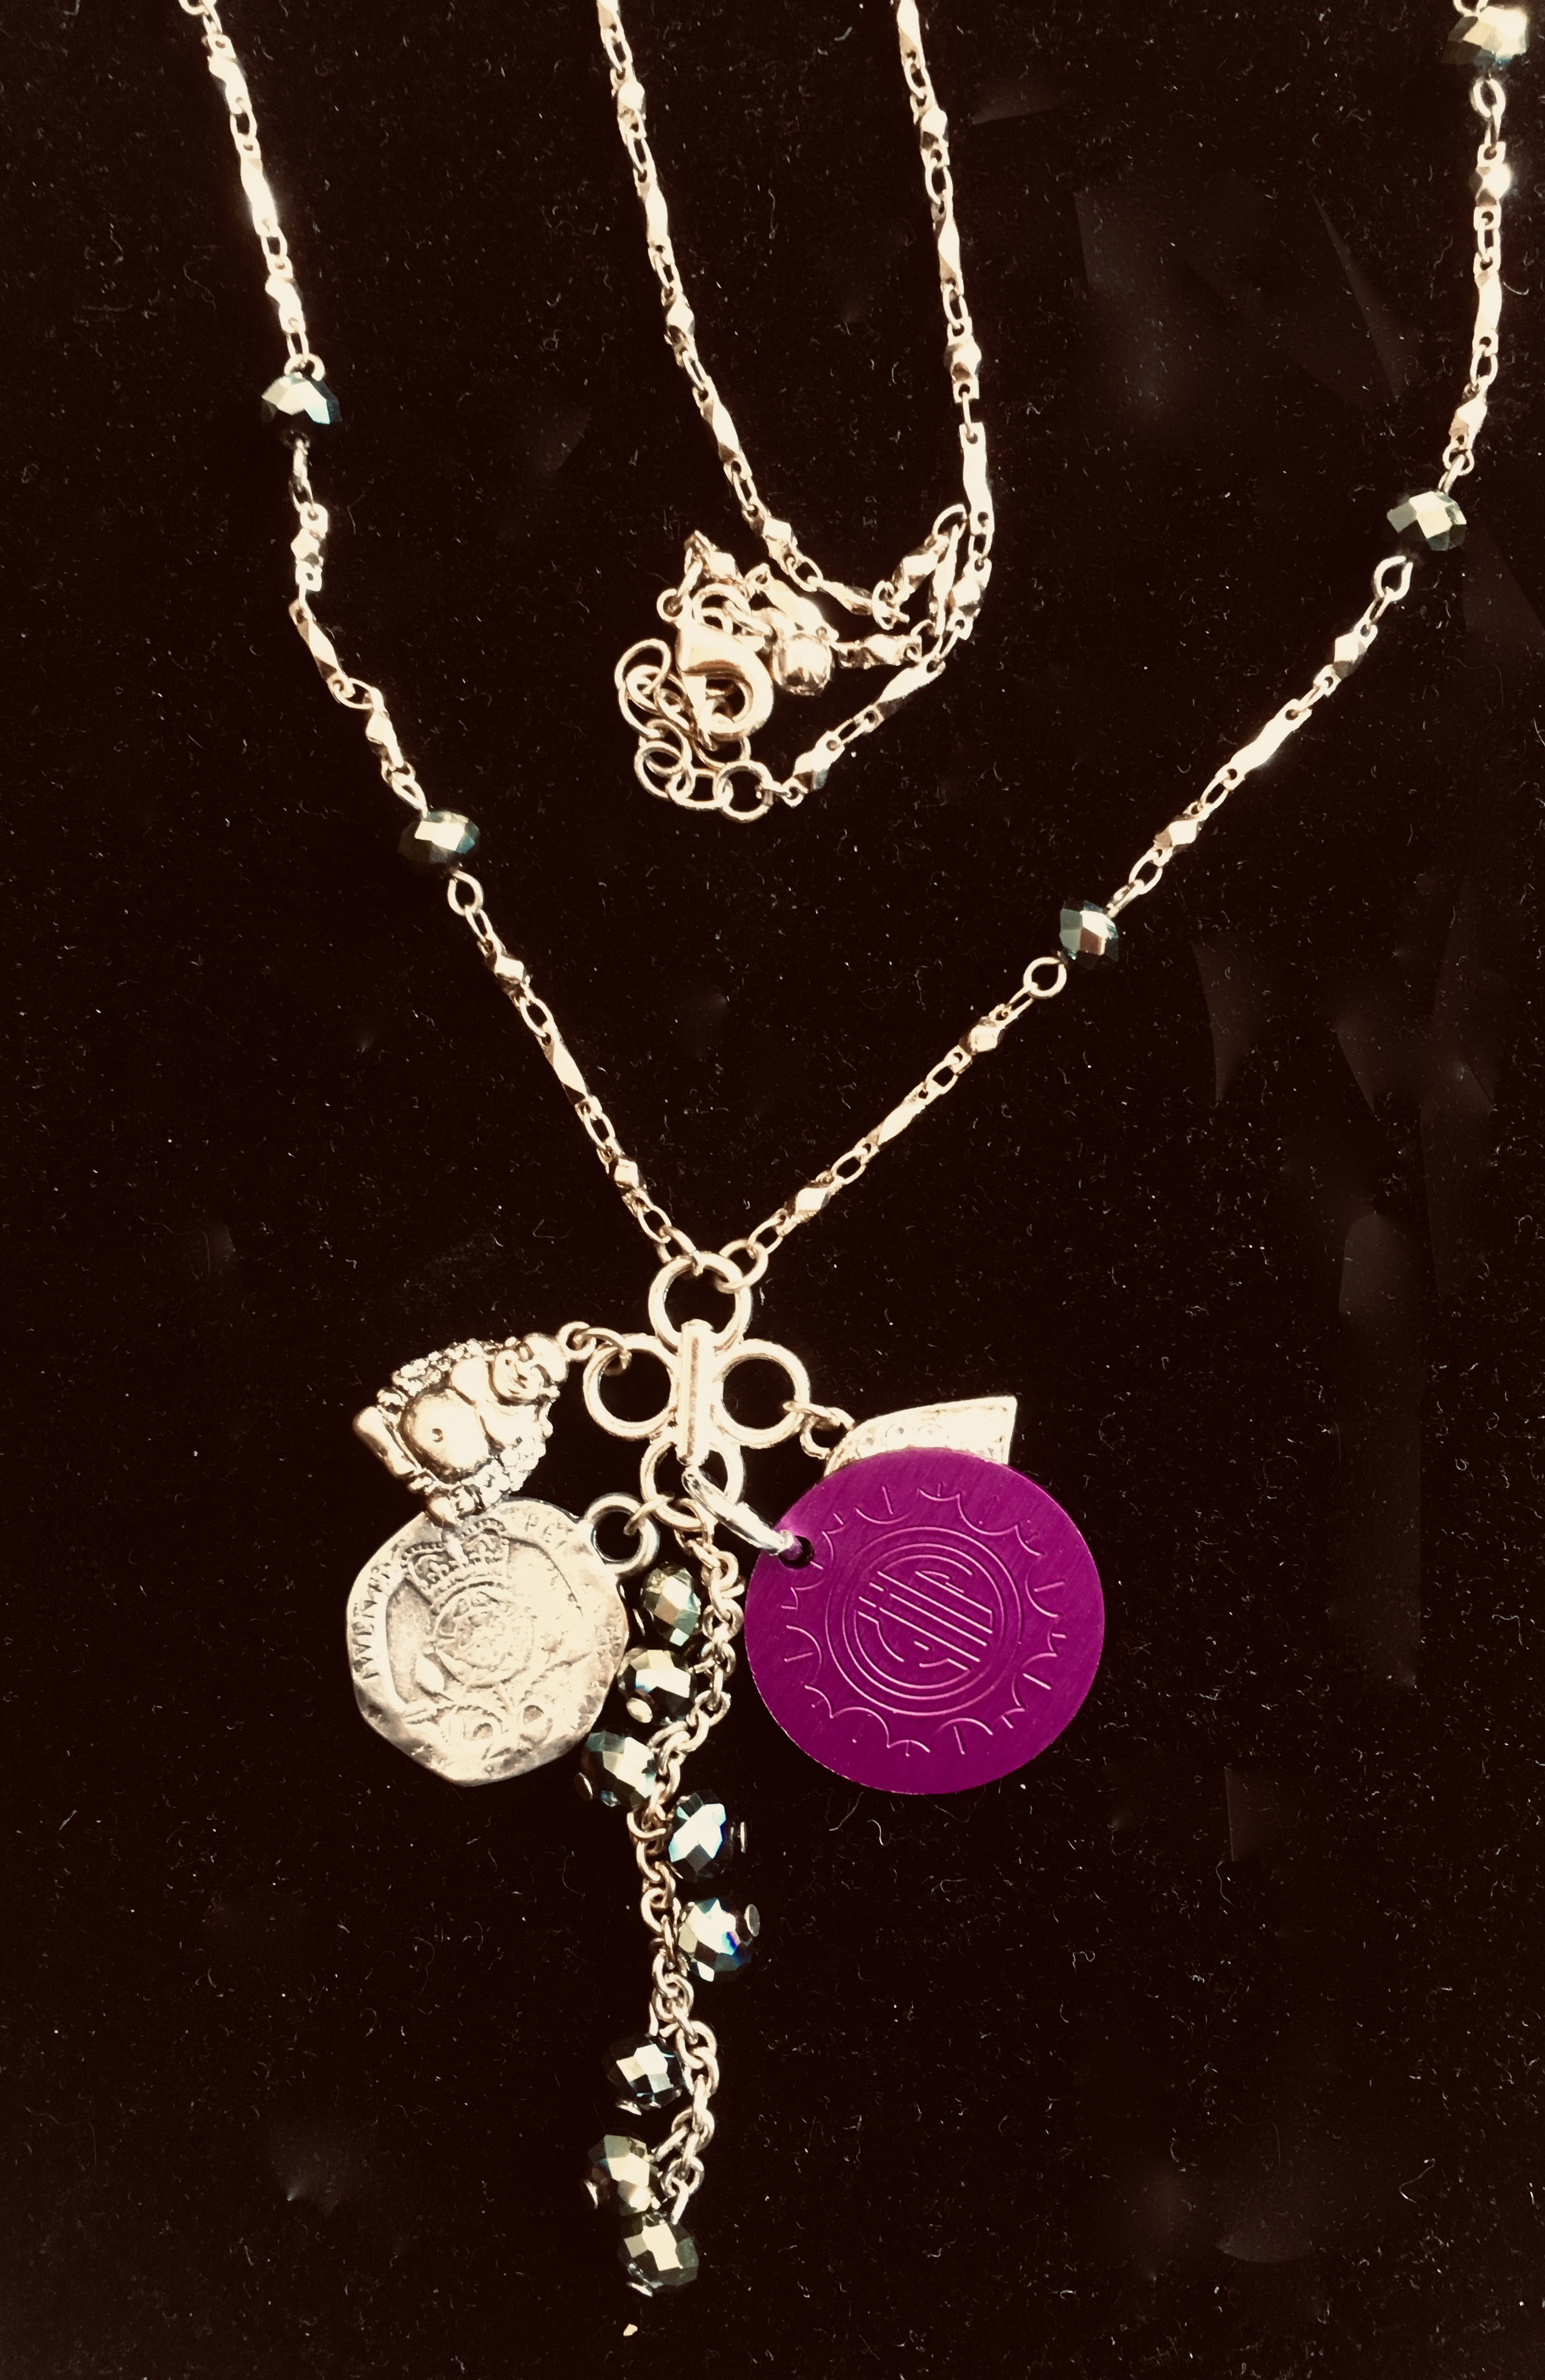 Spiritual symbols Charm Necklace with Purple Disk